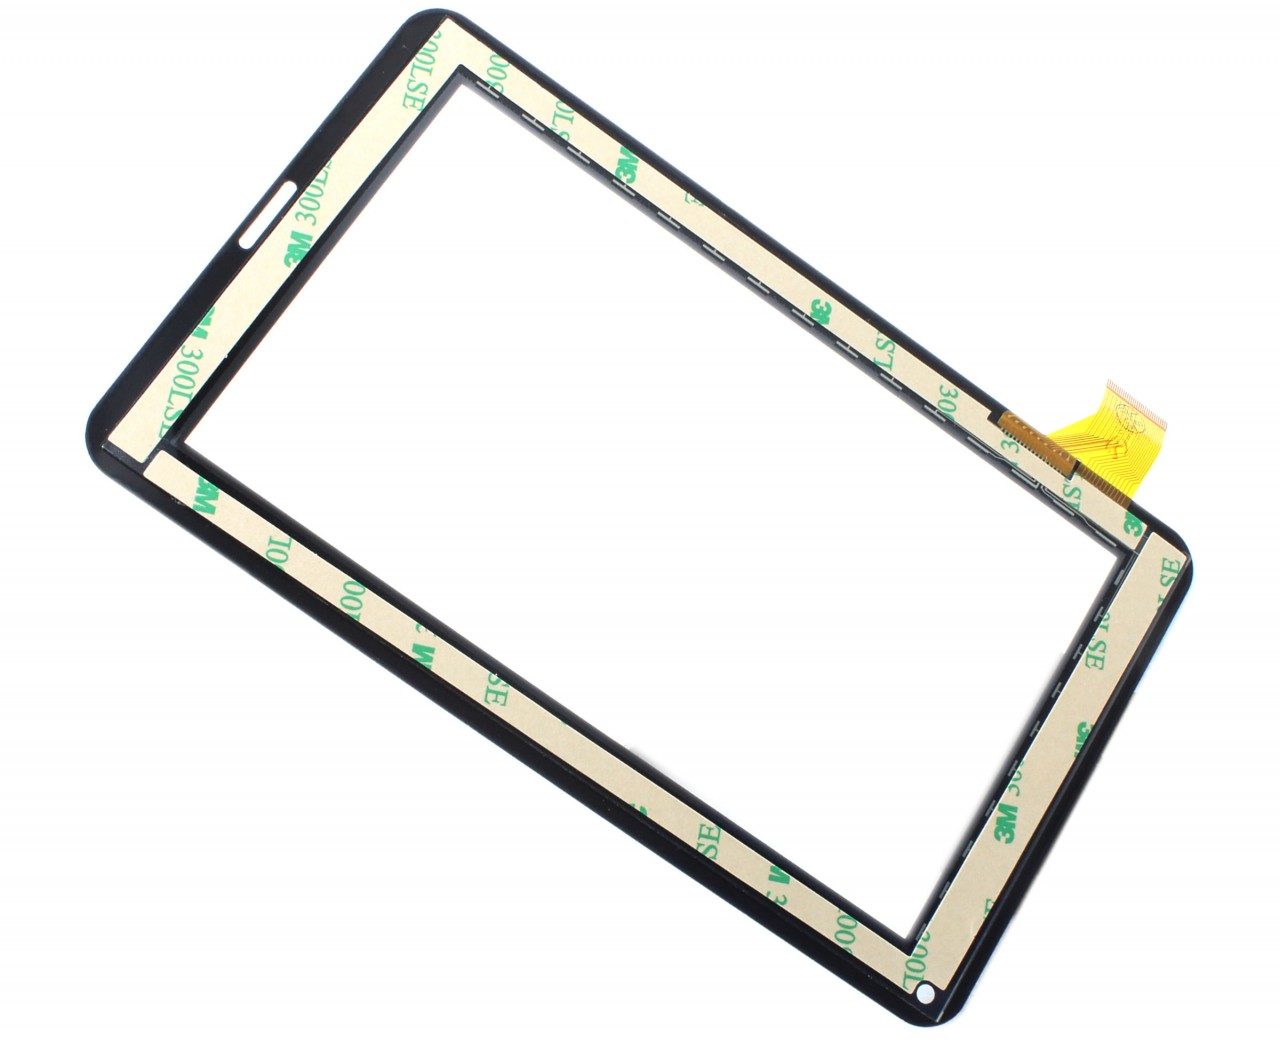 Touchscreen Digitizer Serioux S745 S745TAB Geam Sticla Tableta imagine powerlaptop.ro 2021